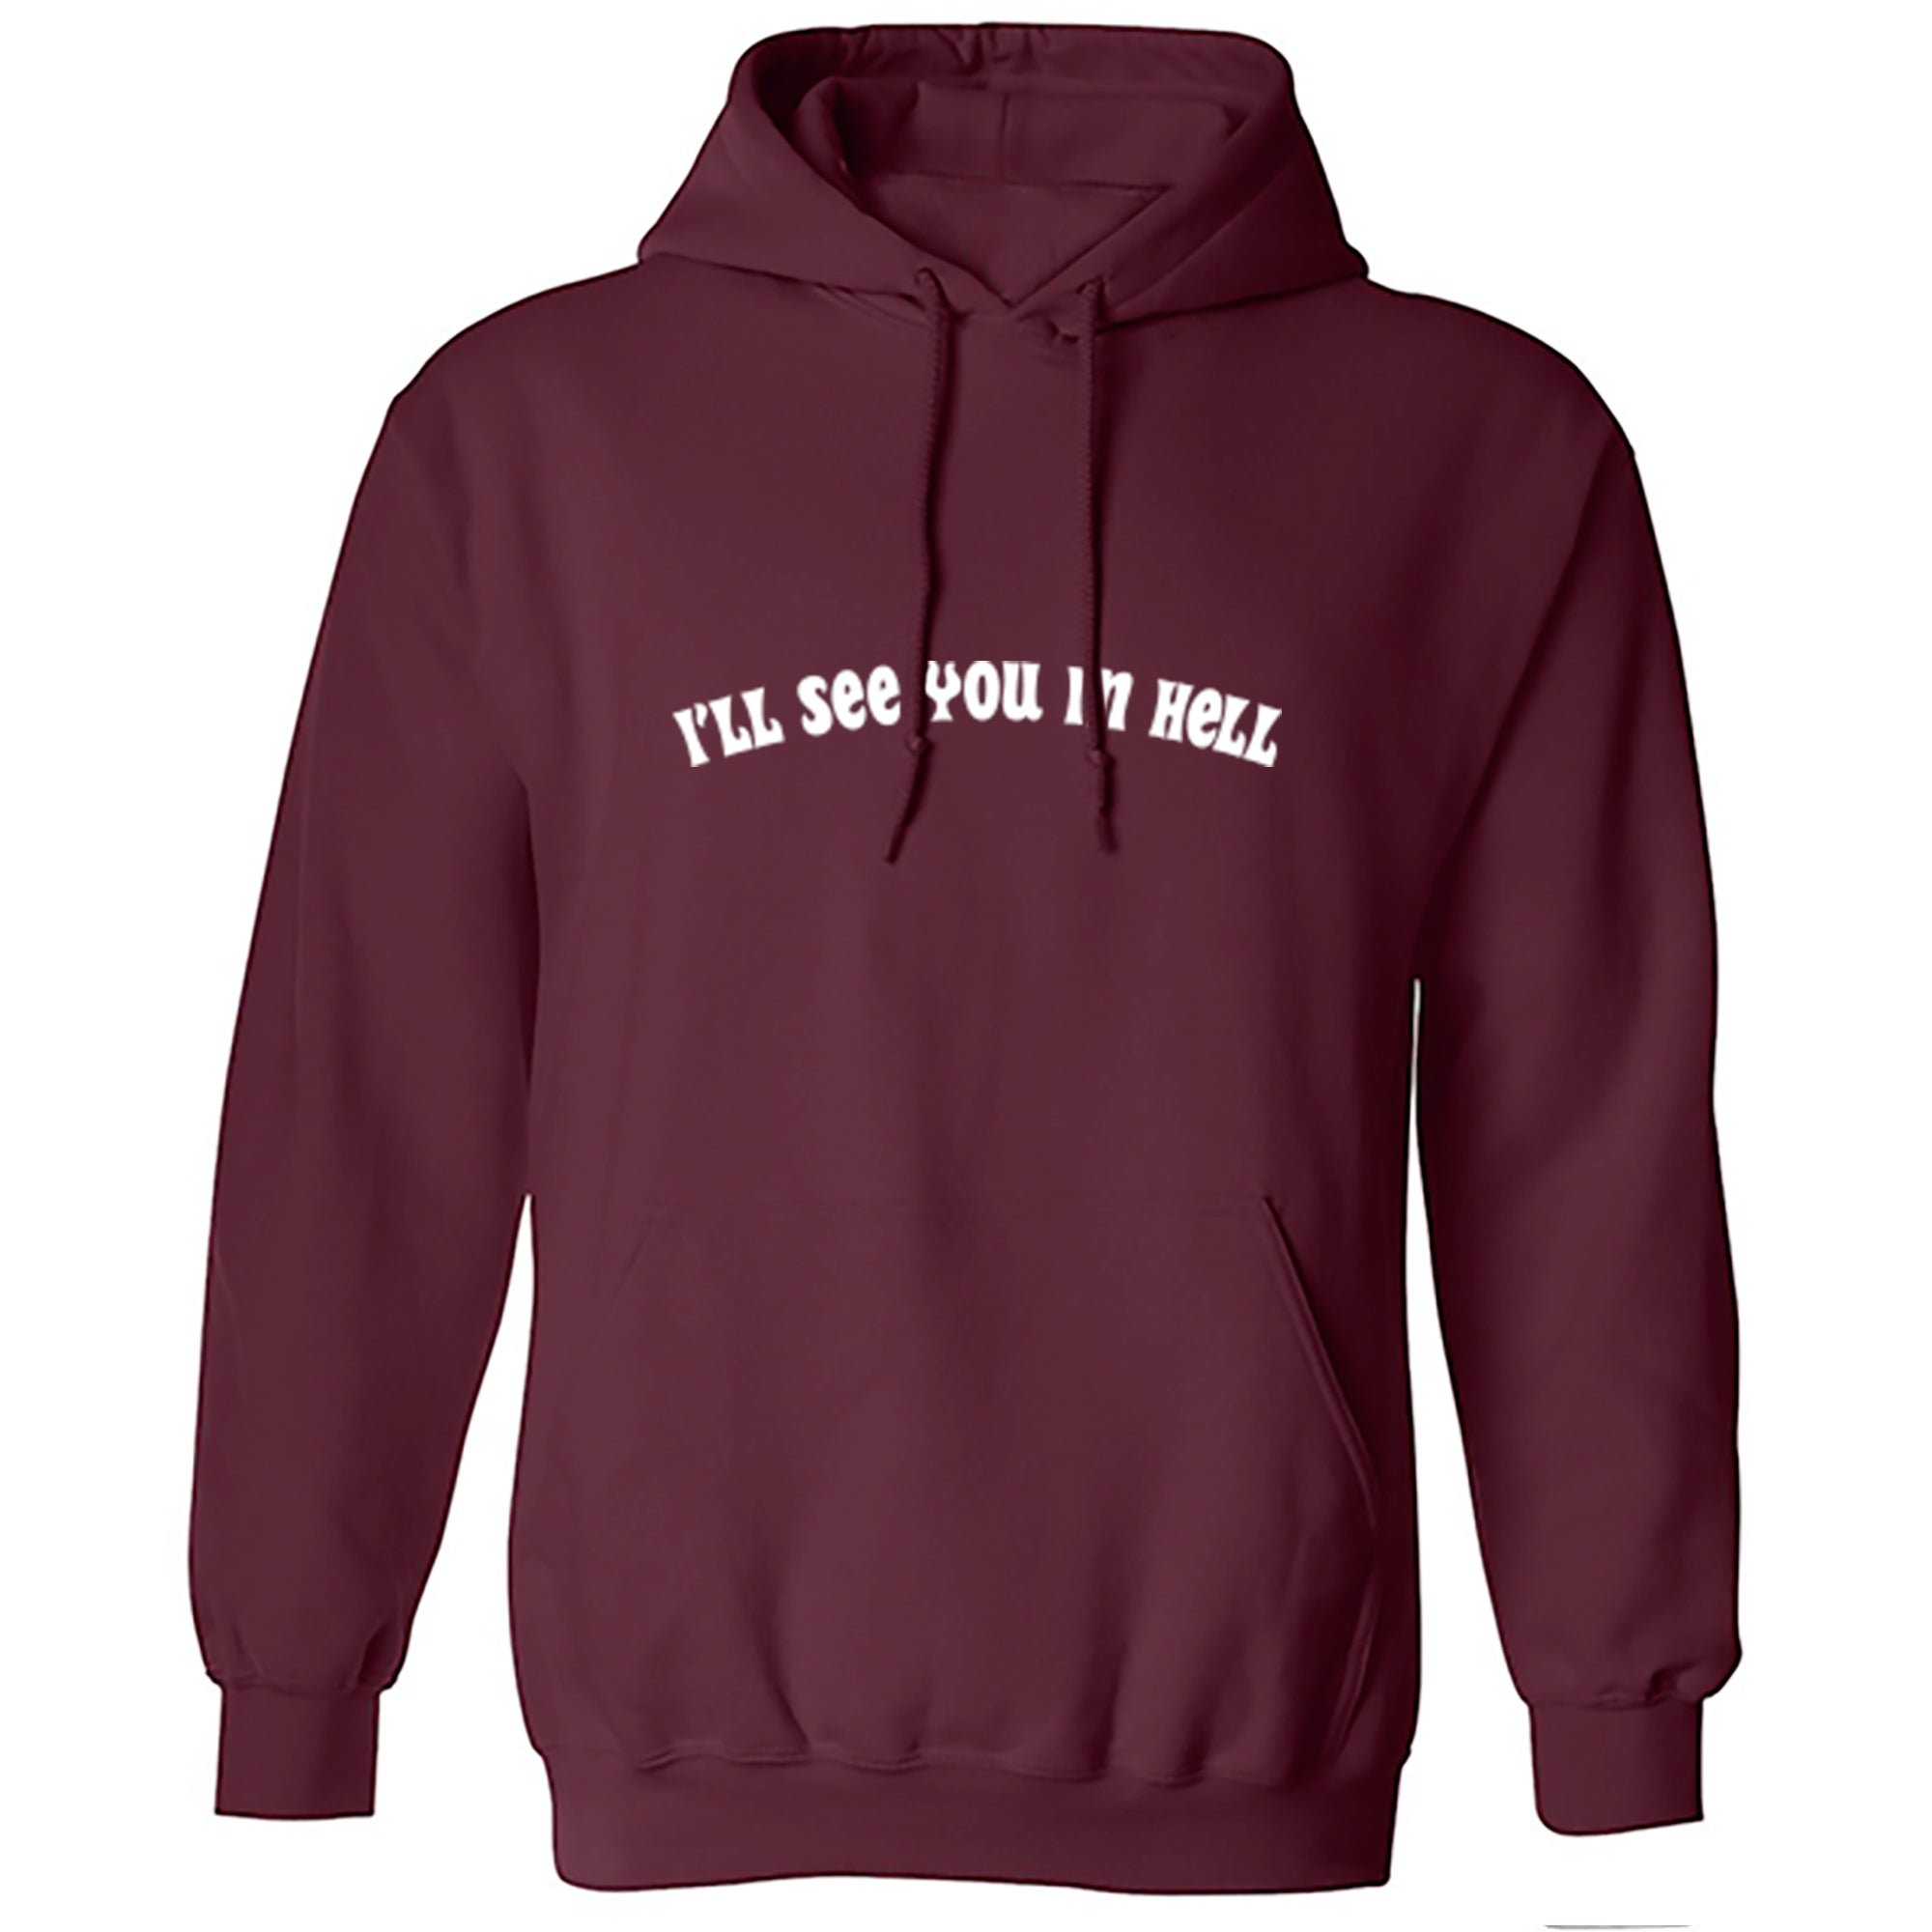 I'll See You In Hell Unisex Hoodie S1202 - Illustrated Identity Ltd.